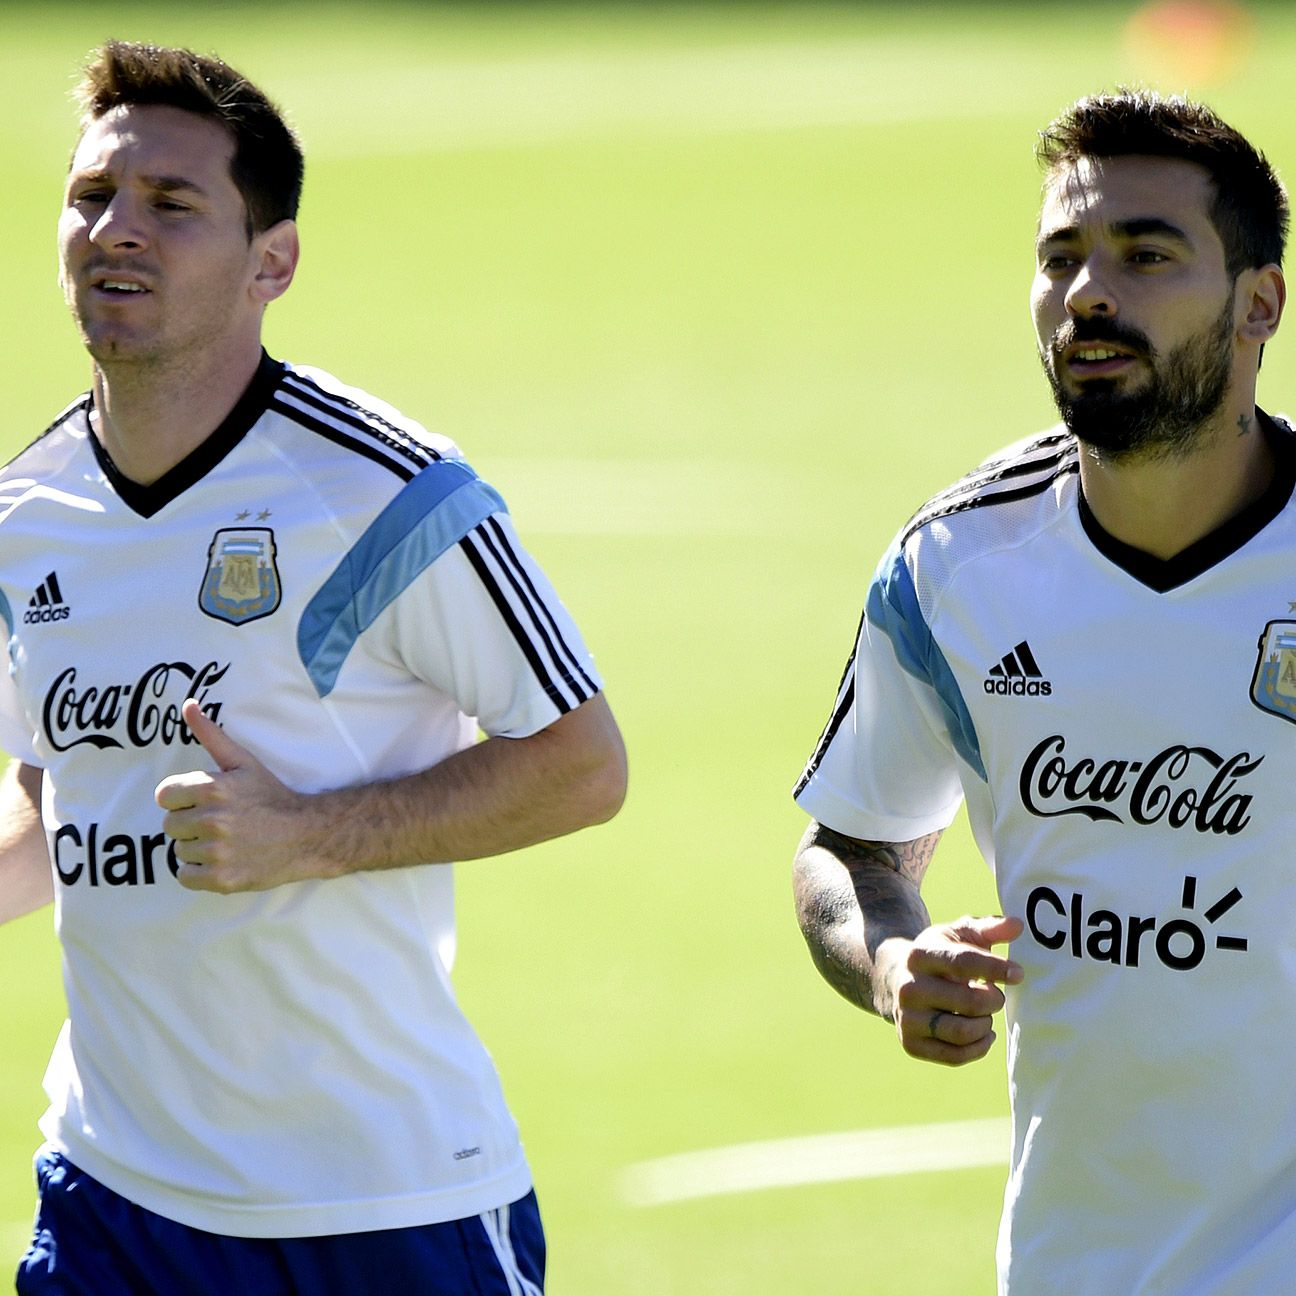 Ezequiel Lavezzi's pace down Argentina's right flank could prove pivotal in giving Lionel Messi more space in the middle.